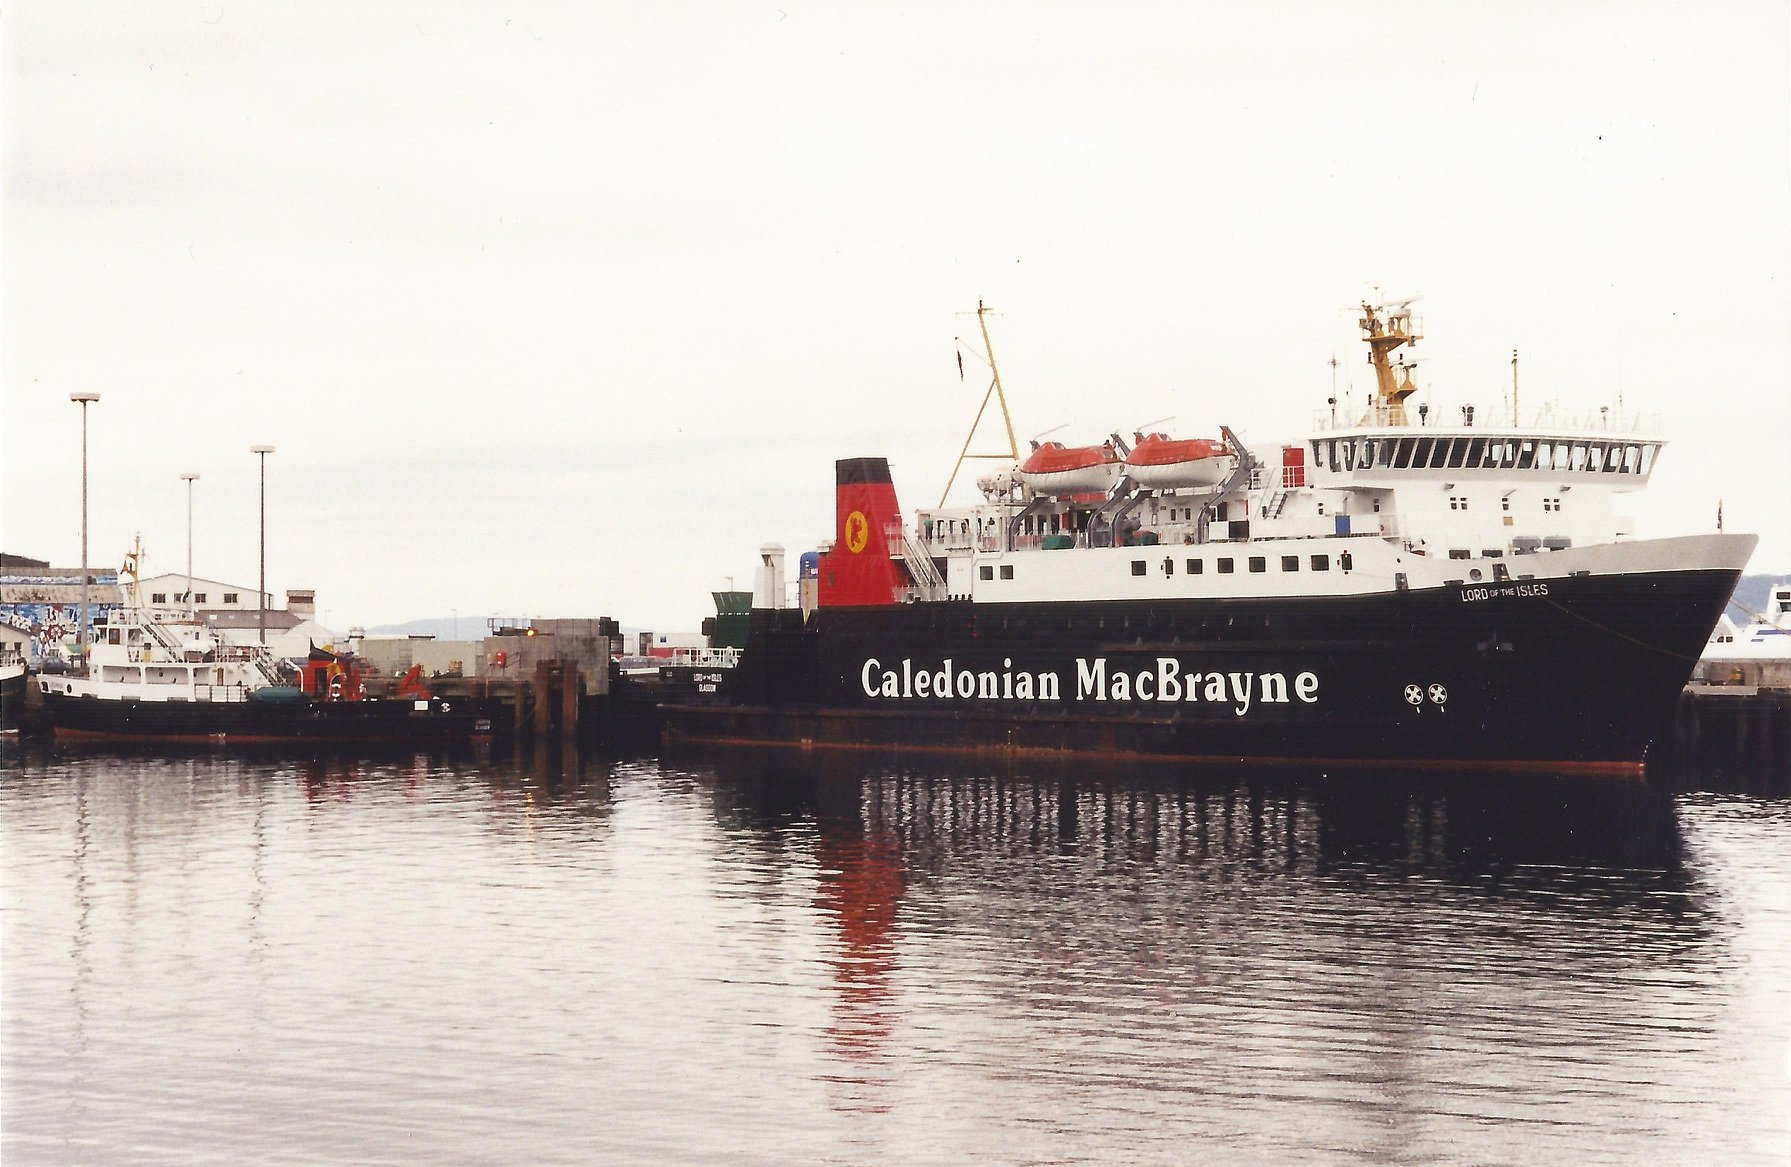 Lochmor at Mallaig with Lord of the Isles (Iain McPherson)